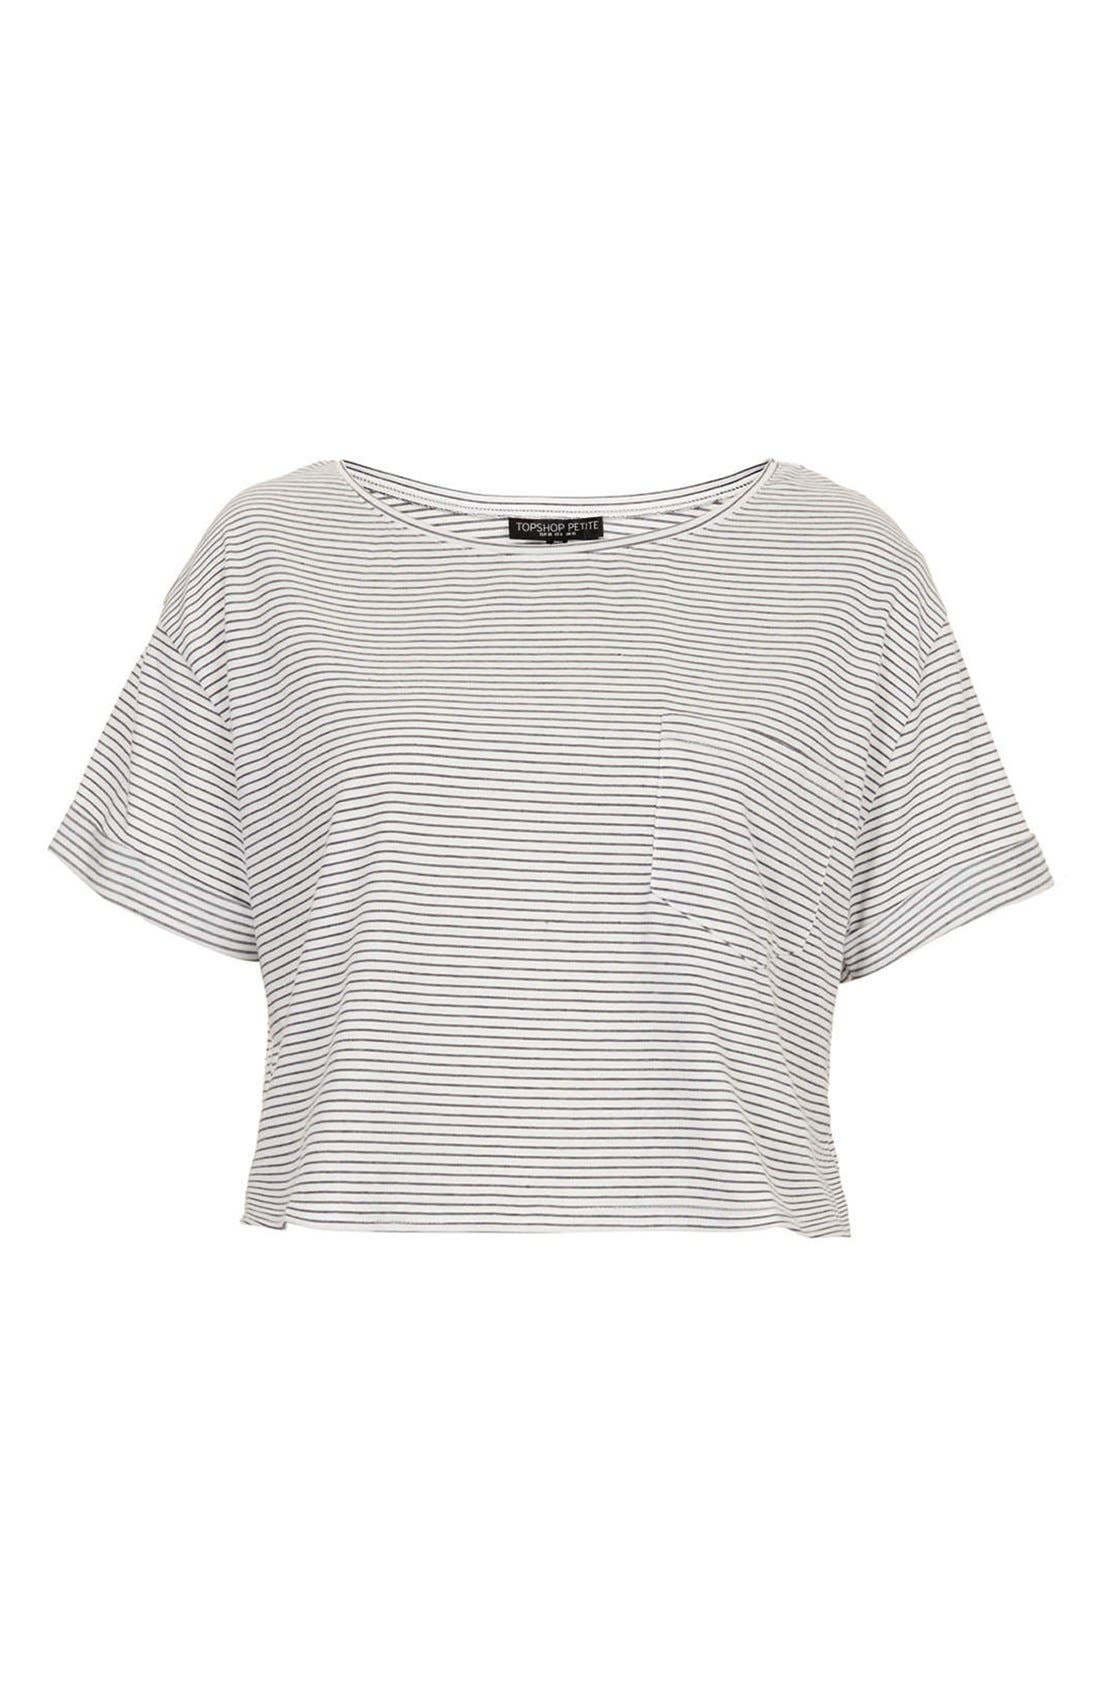 Alternate Image 3  - Topshop Cotton Crop Tee (Petite)